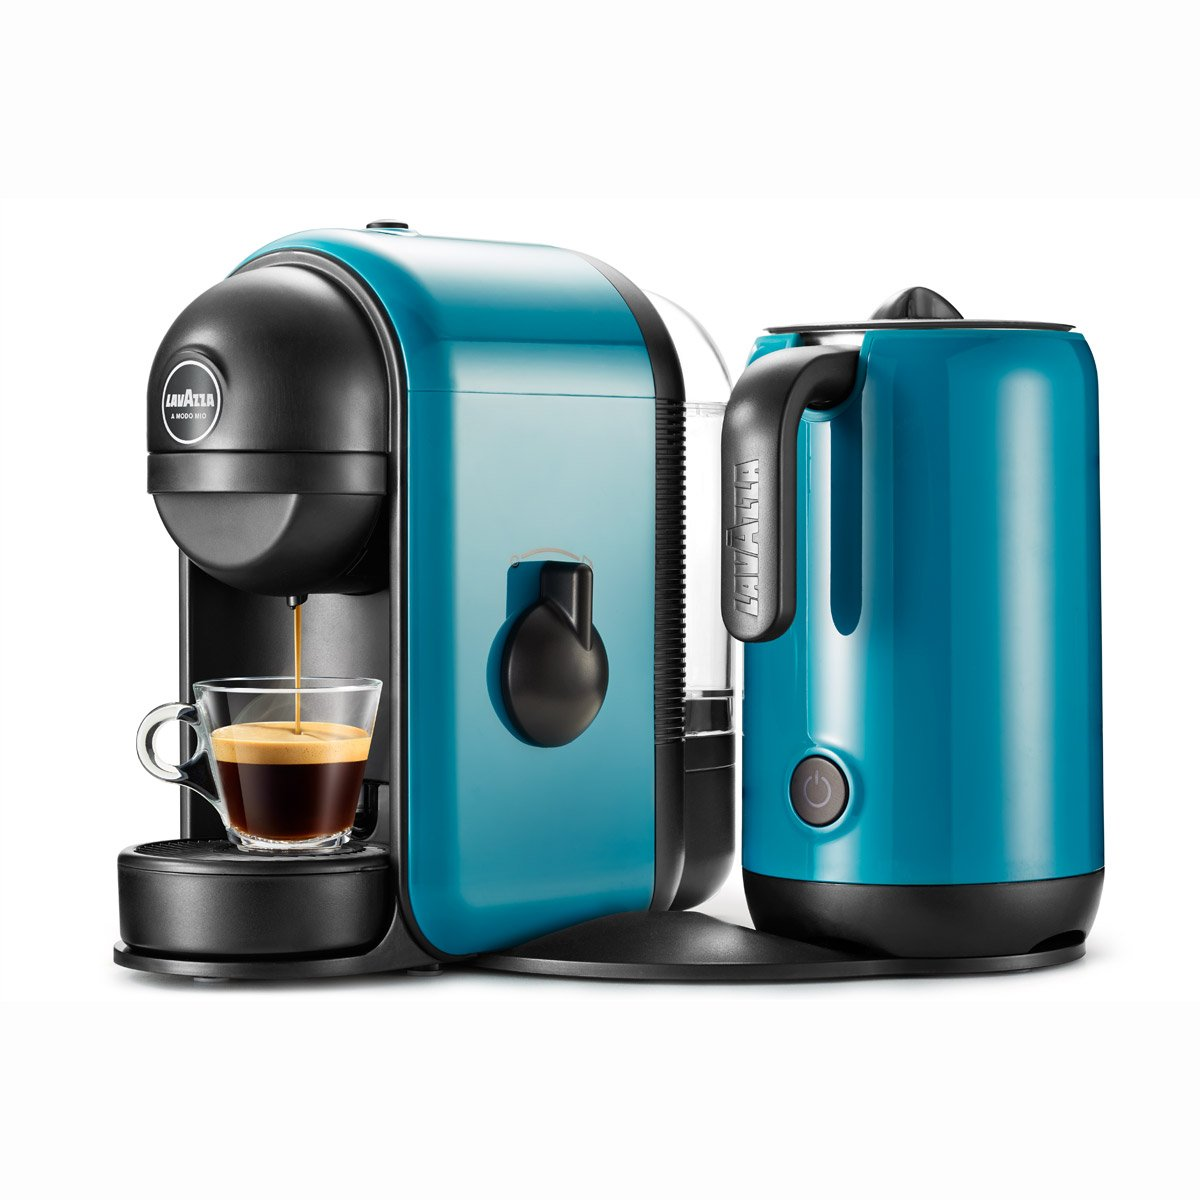 Lavazza Minù Caffè Latte – Coffee (Freestanding, semi-automática, Pod Coffee Machine, Lavazza A Modo Mio, Coffee Capsule, Blue) 10080941